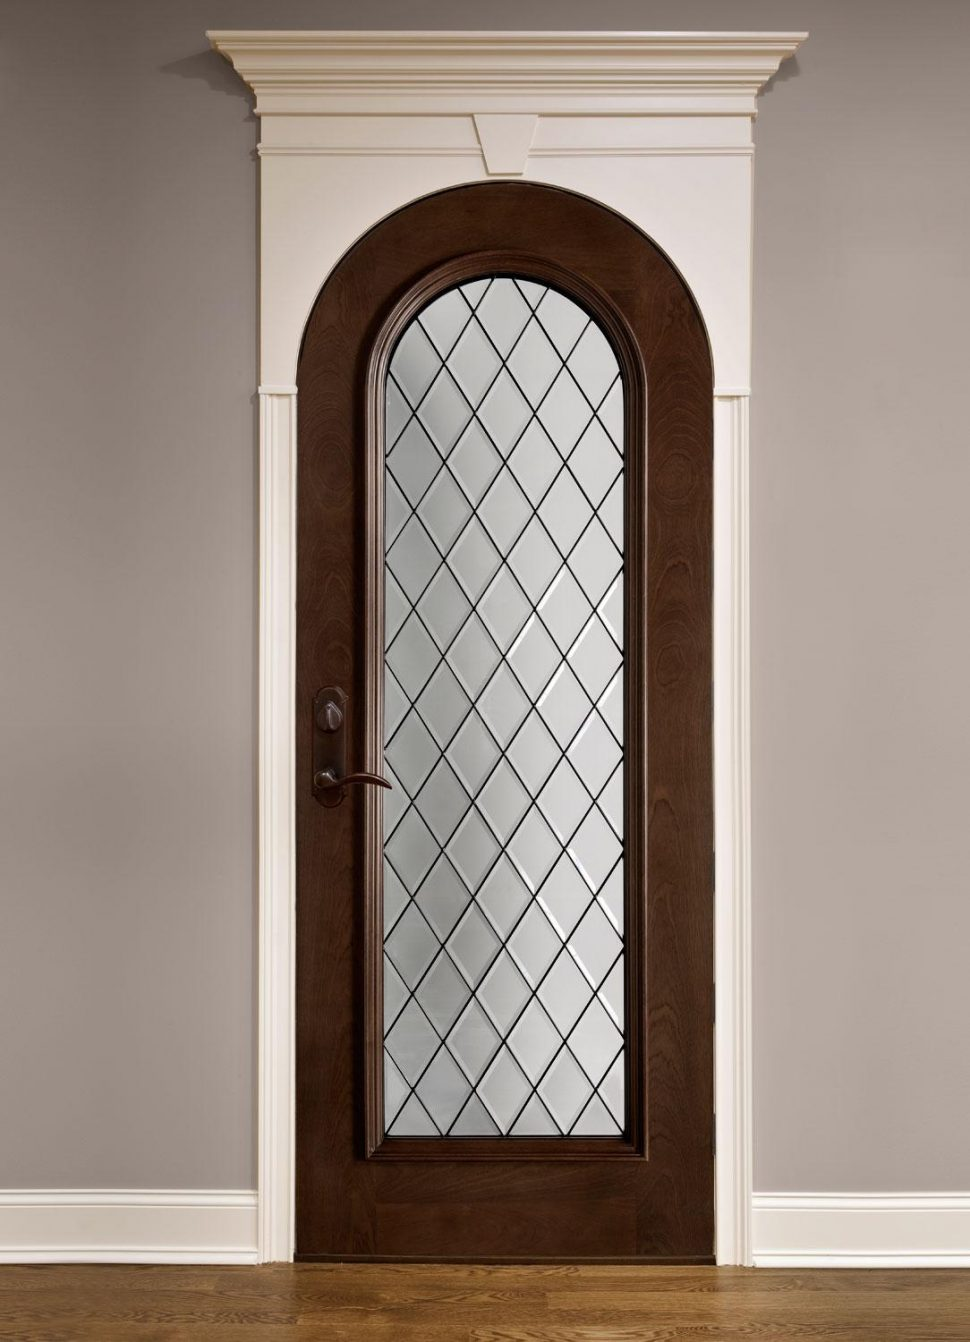 French Doors Home Depot | Double Pane French Doors | Patio French Doors Prices